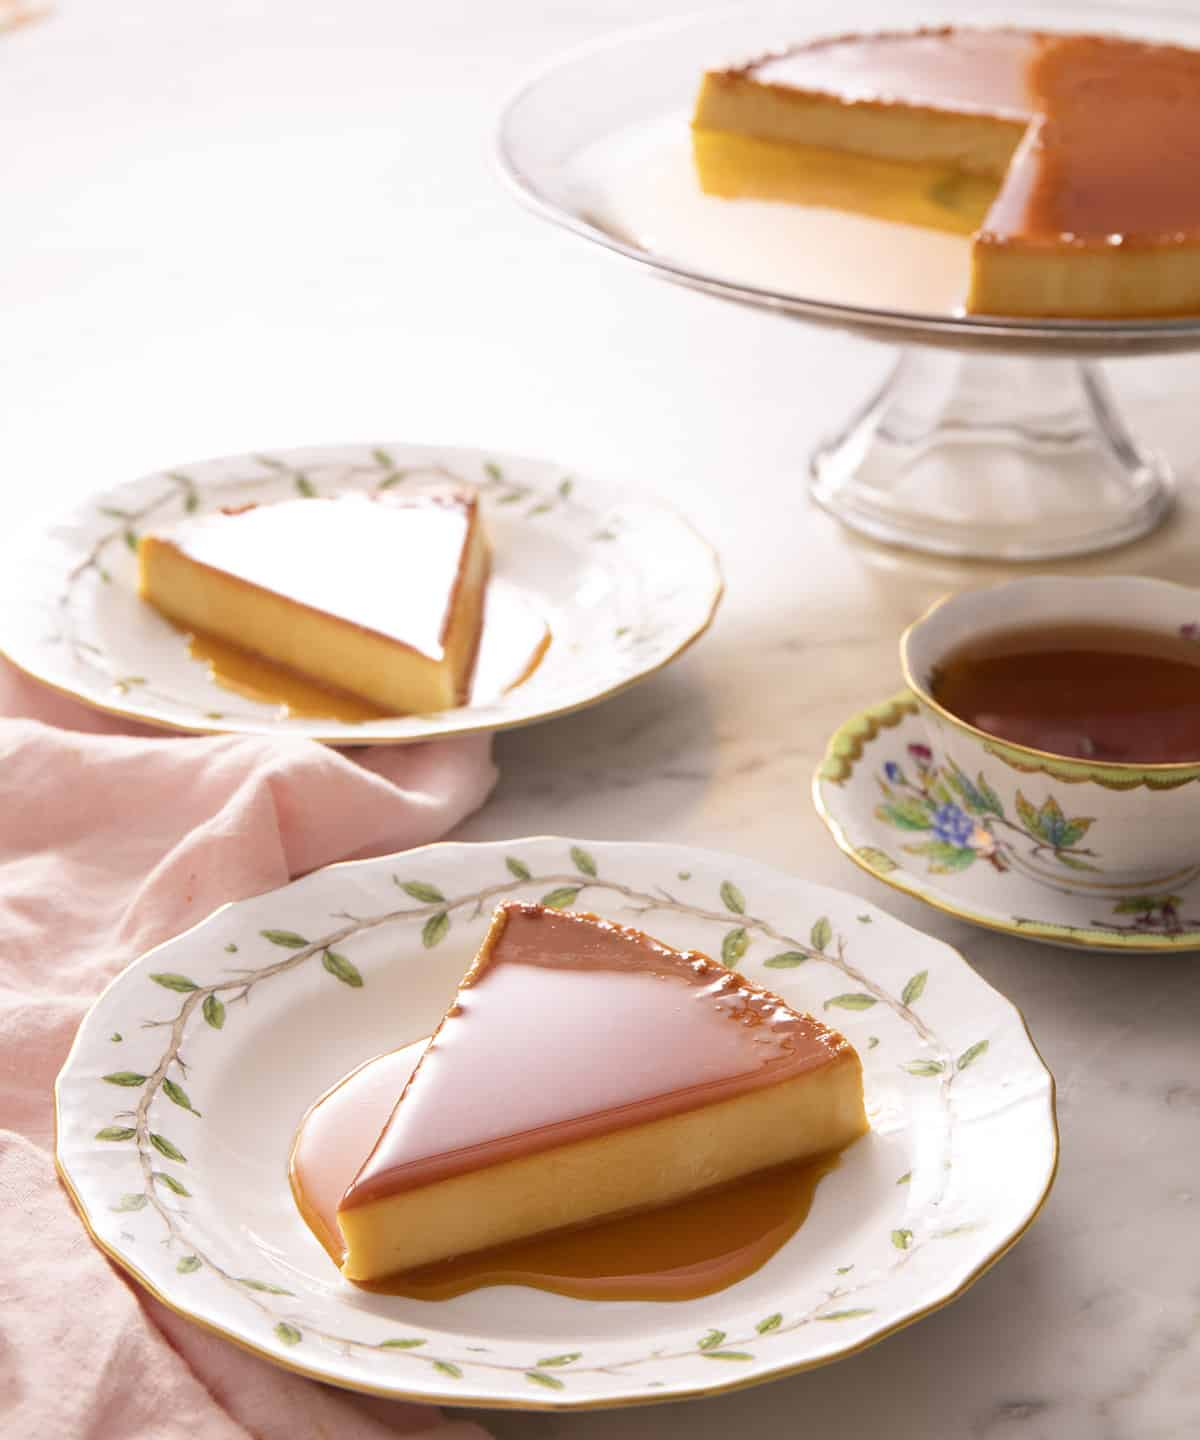 Pieces of flan on porcelain plates next to a cup of tea.